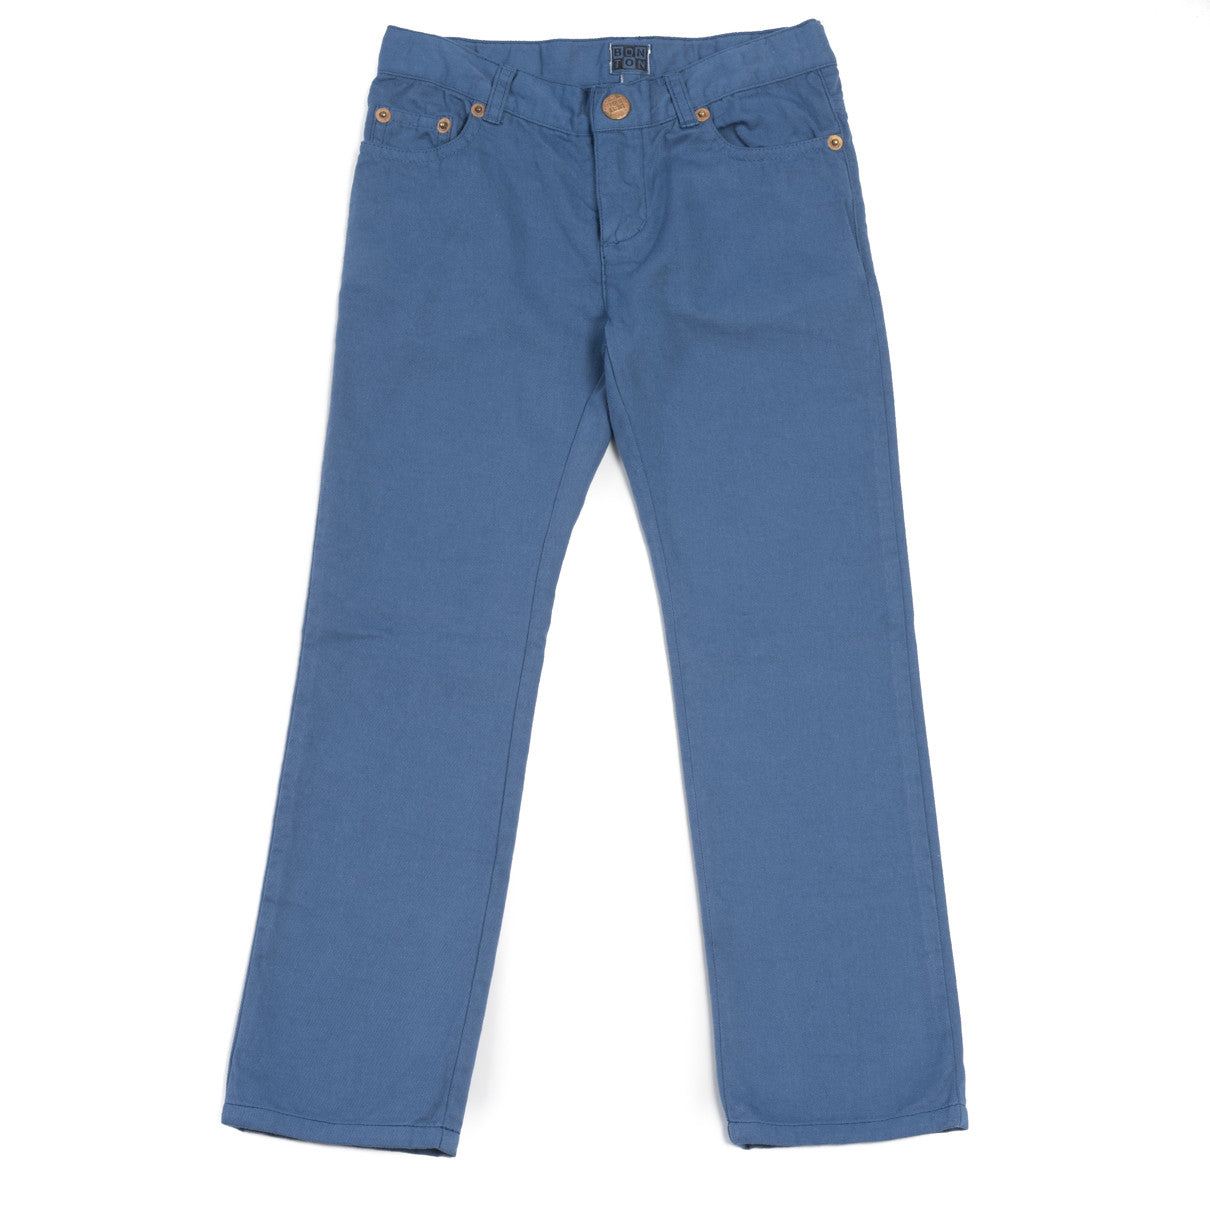 Bonton Blue Canvas Jeans - Ladida